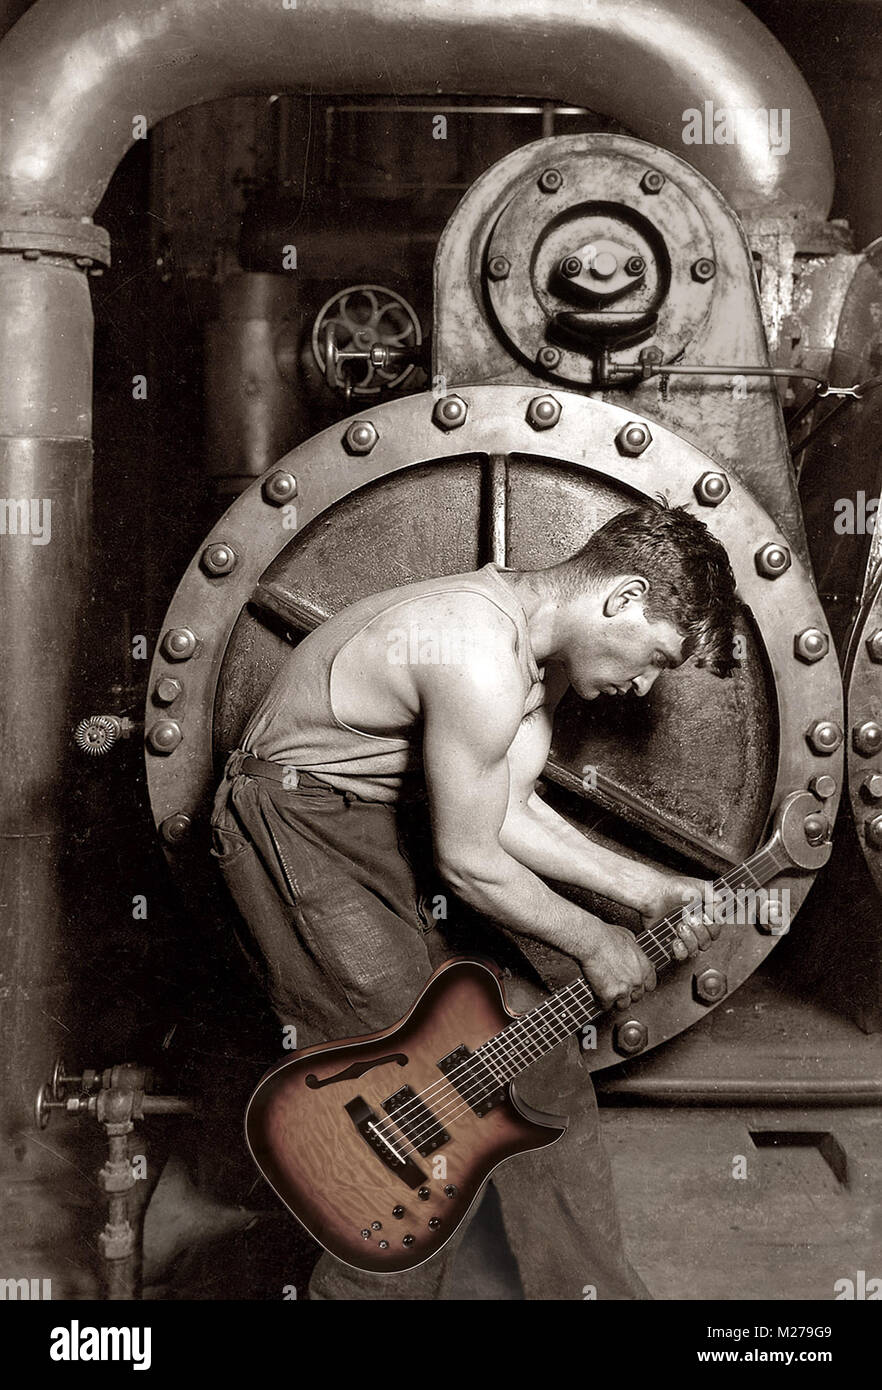 Photo composite of mechanic with electric guitar. Lewis Hine photo of Power house mechanic working on steam pump, - Stock Image